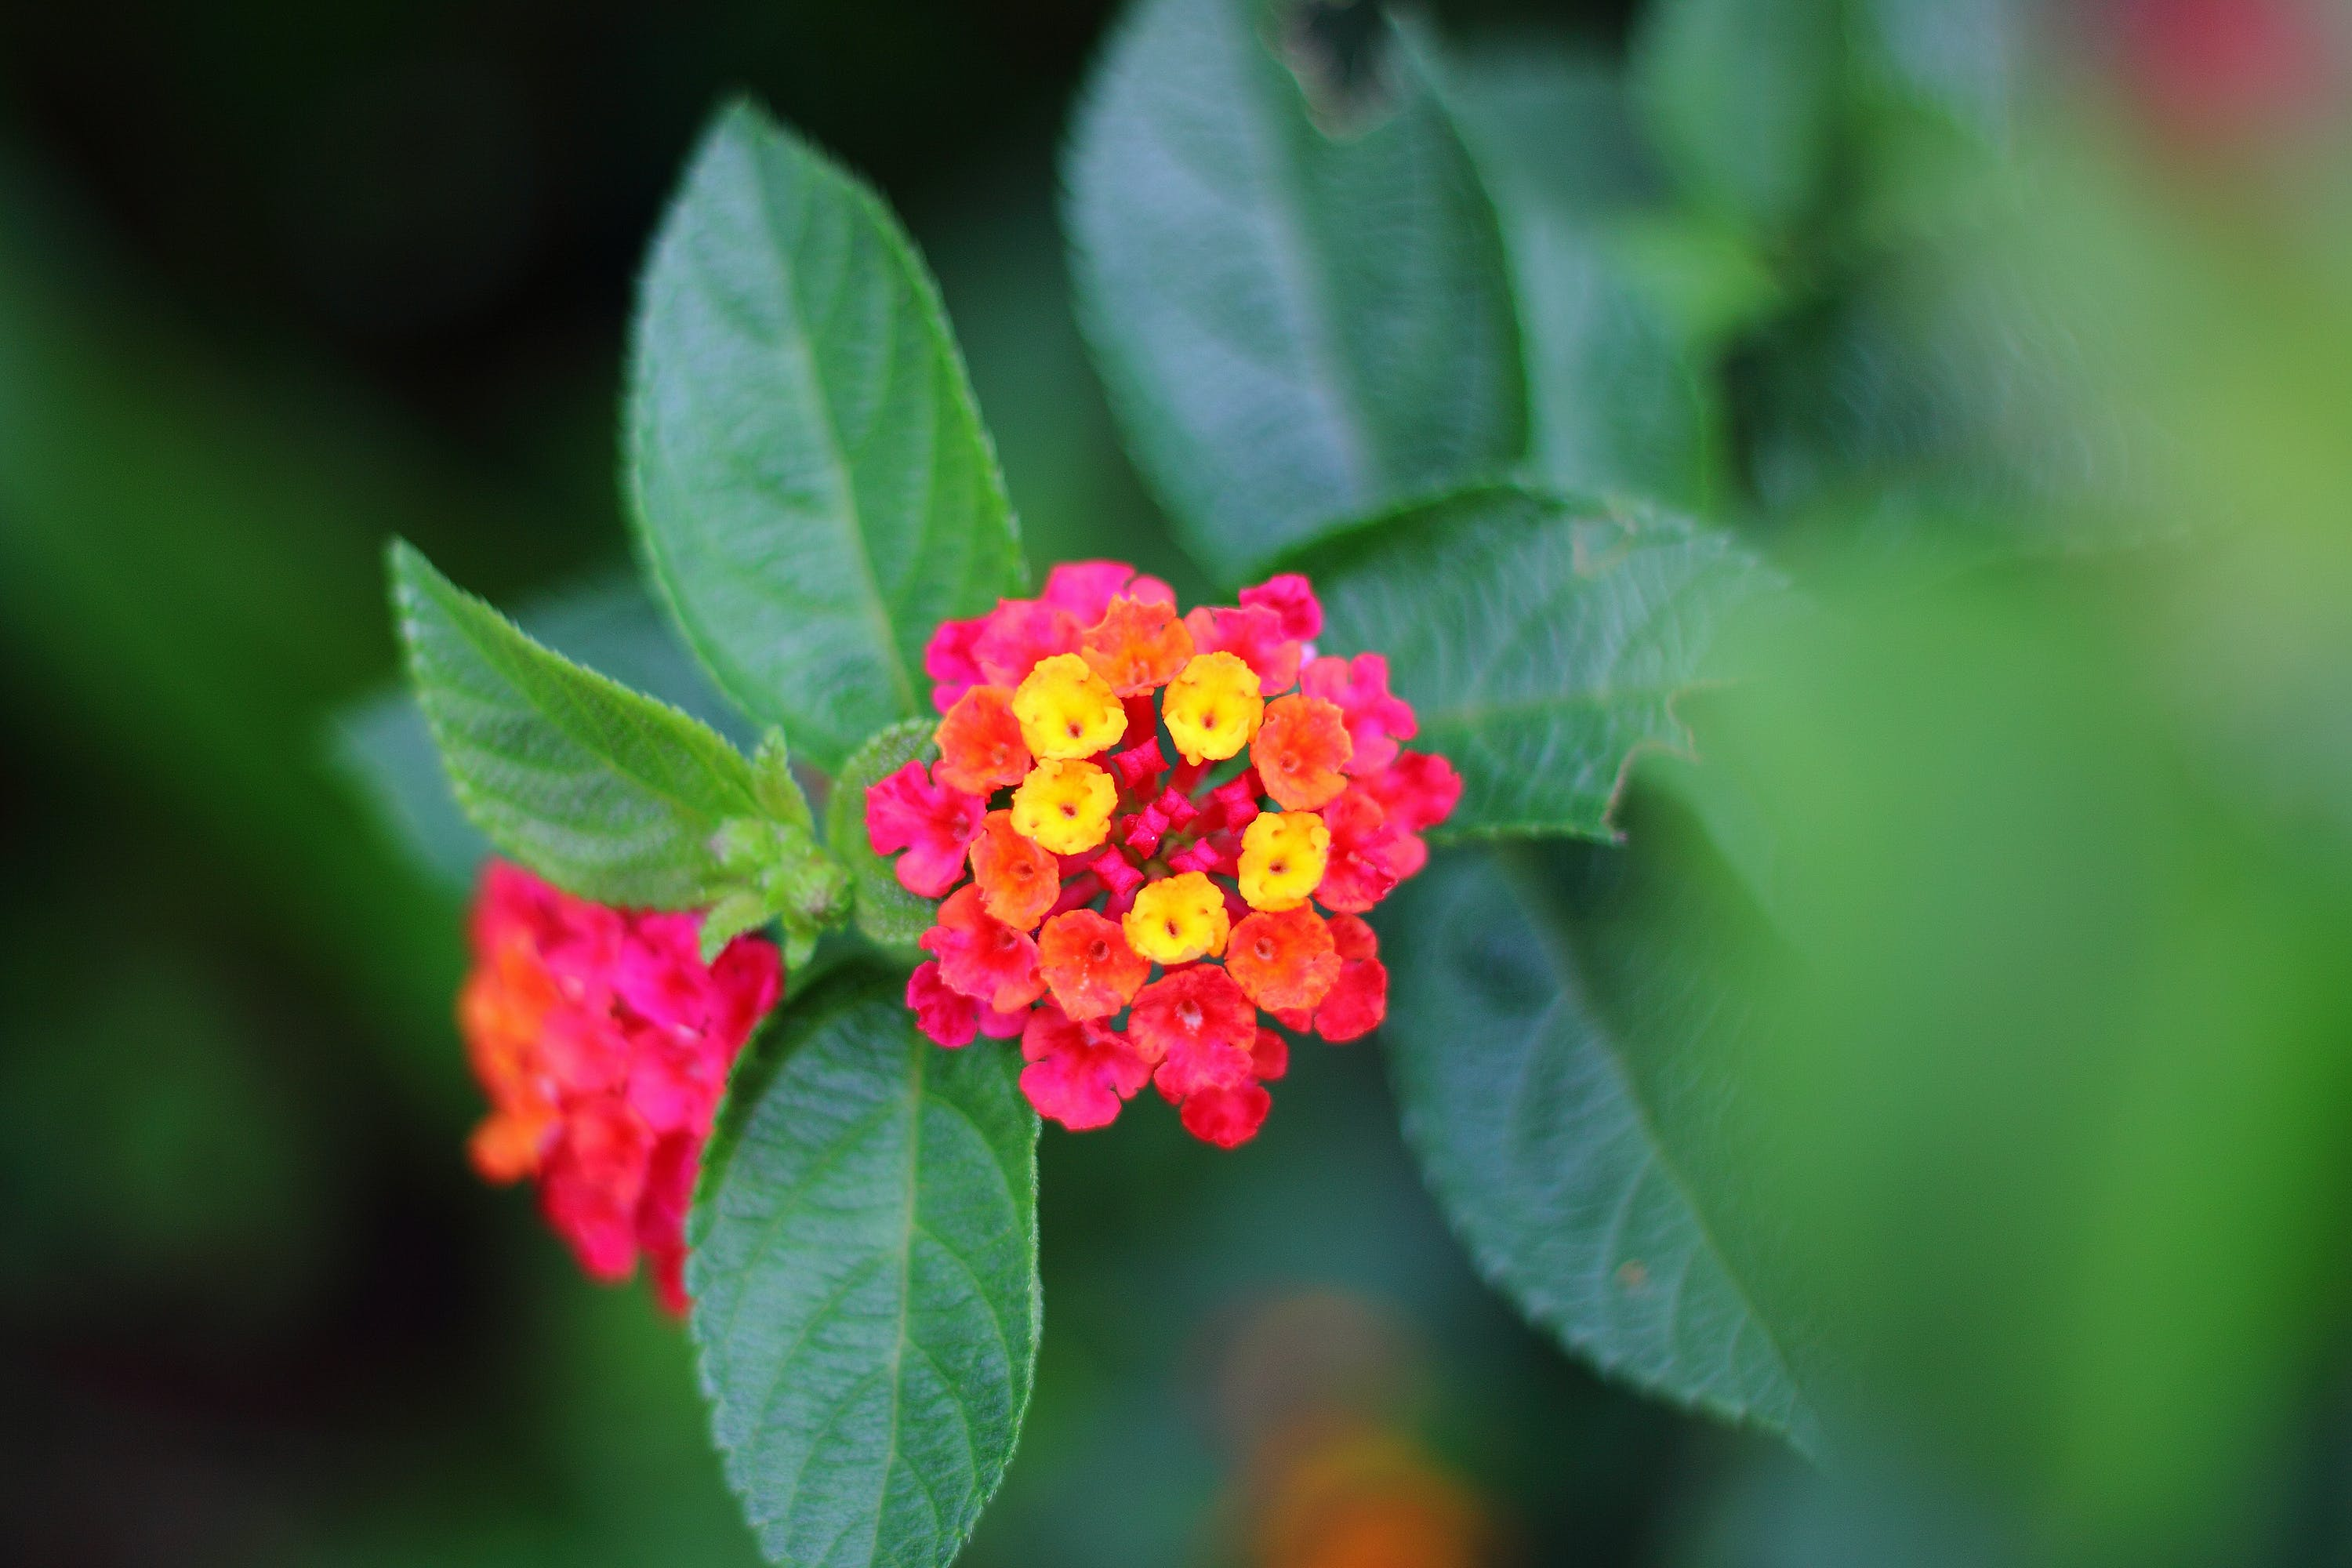 Selective Focus Photography of Red and Yellow Lantana Flower